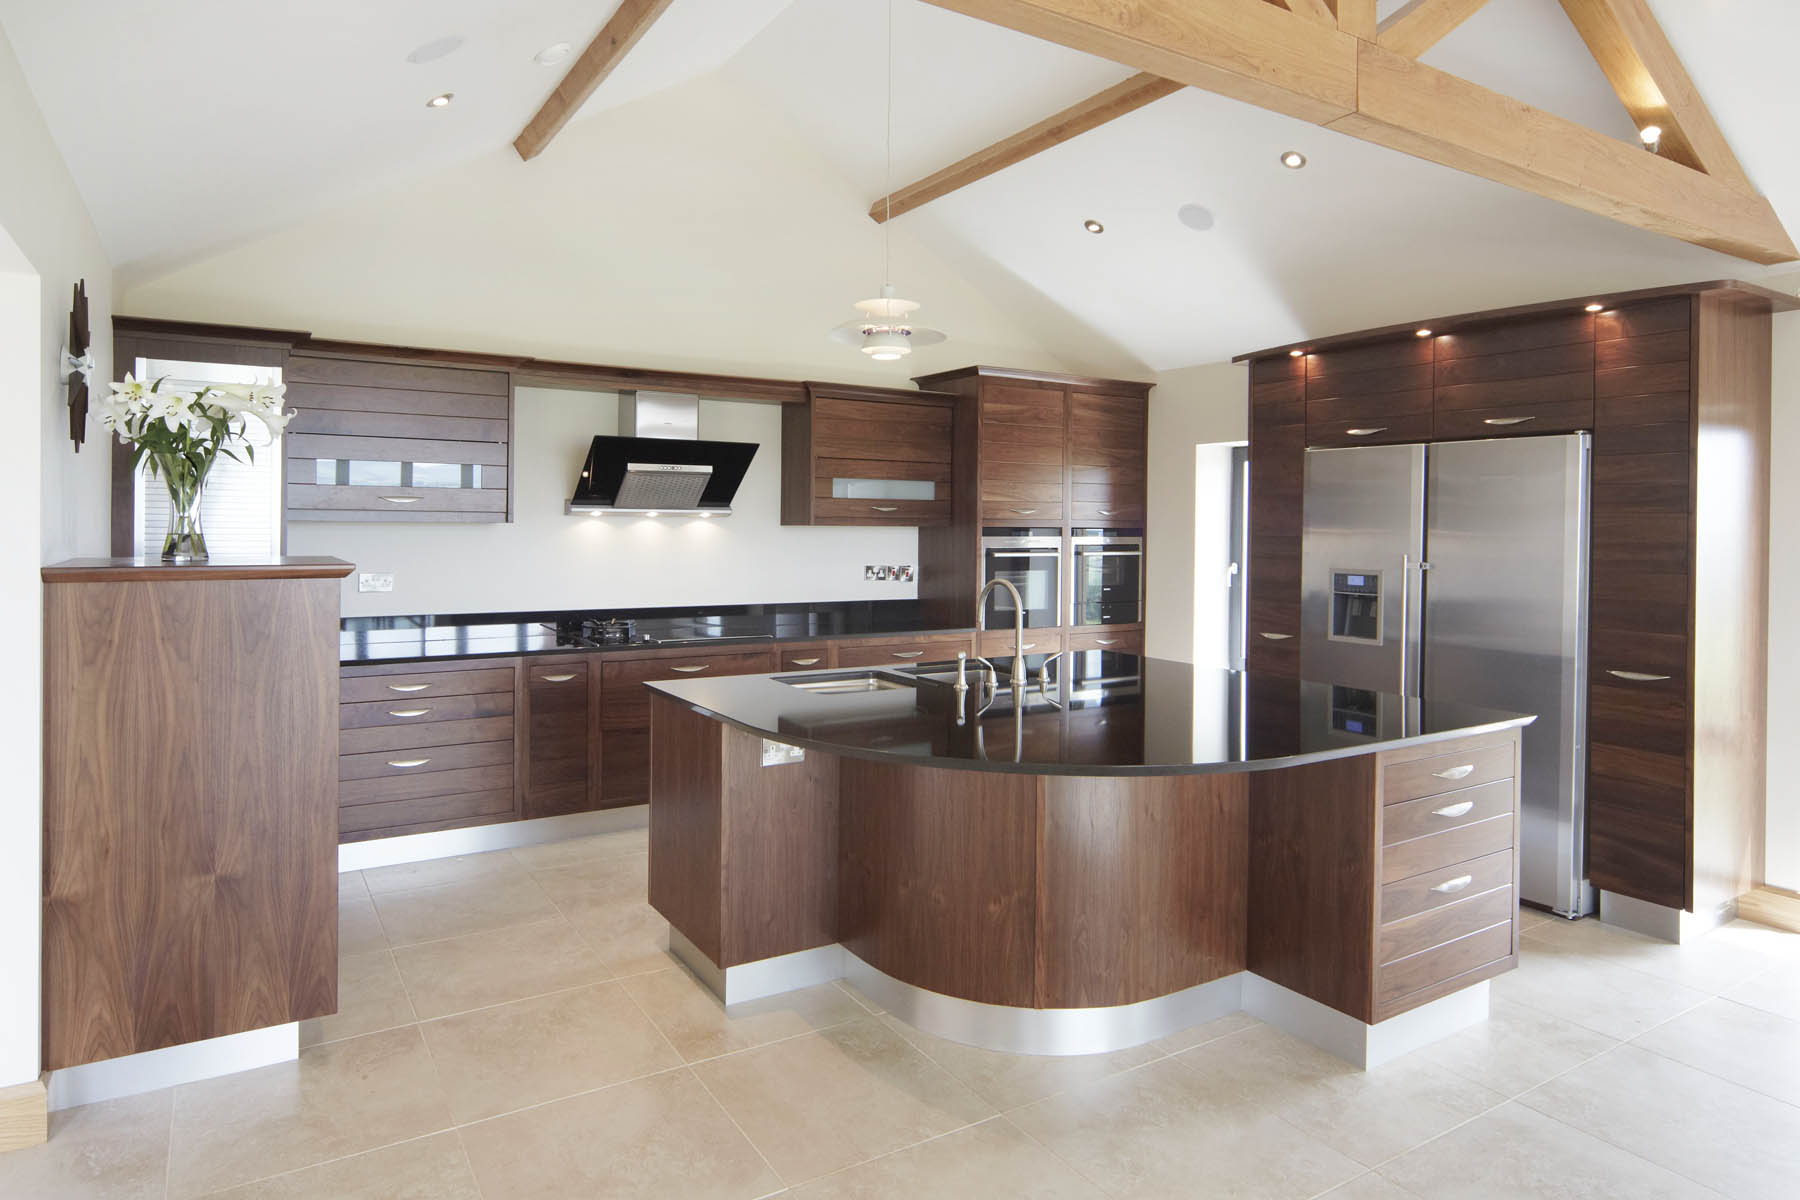 Kitchens california remodeling inc for Kitchen remodel designs pictures